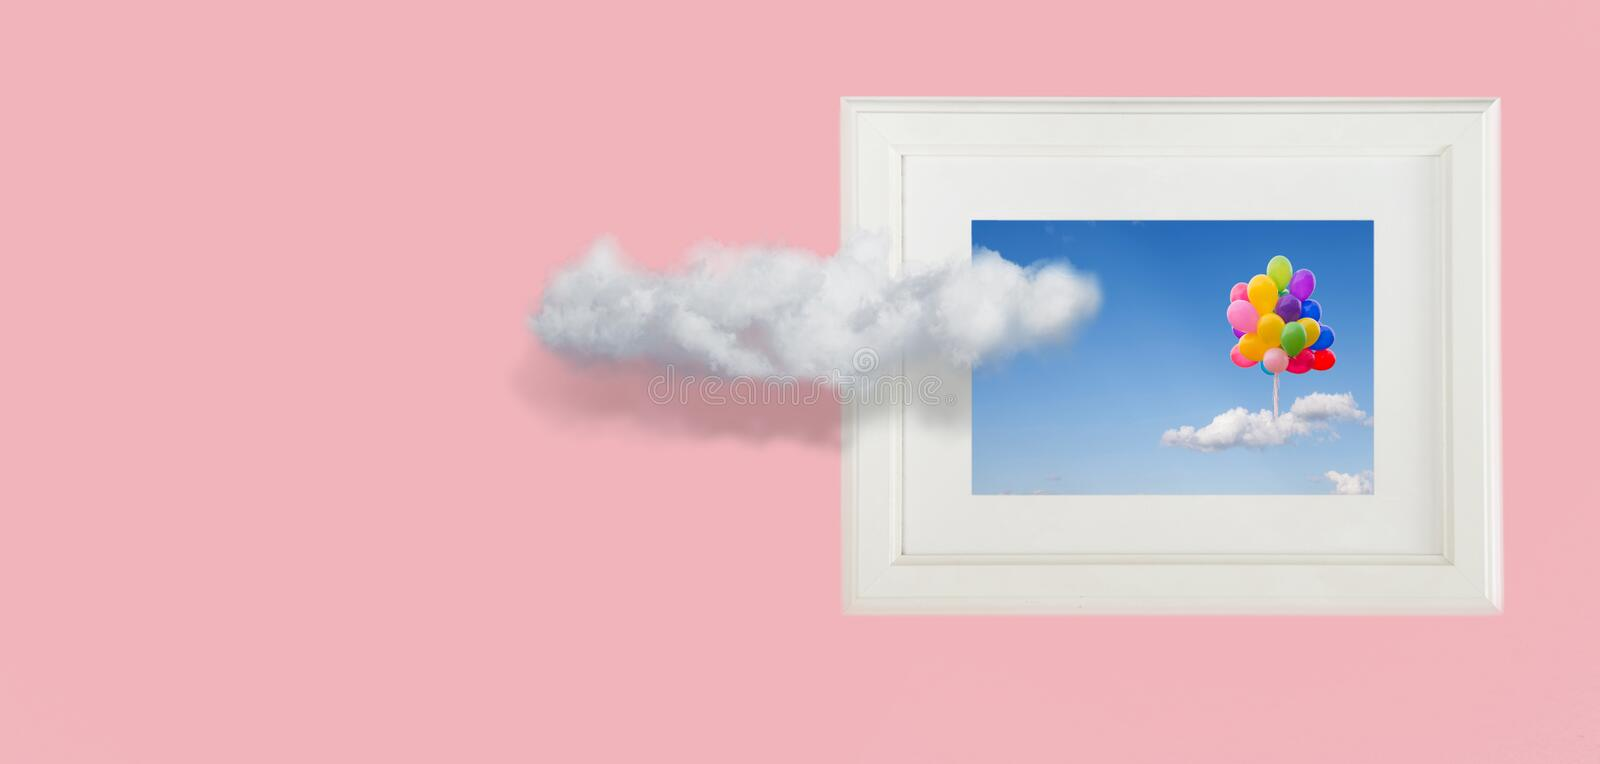 Conceptual image of sky clouds royalty free stock photos